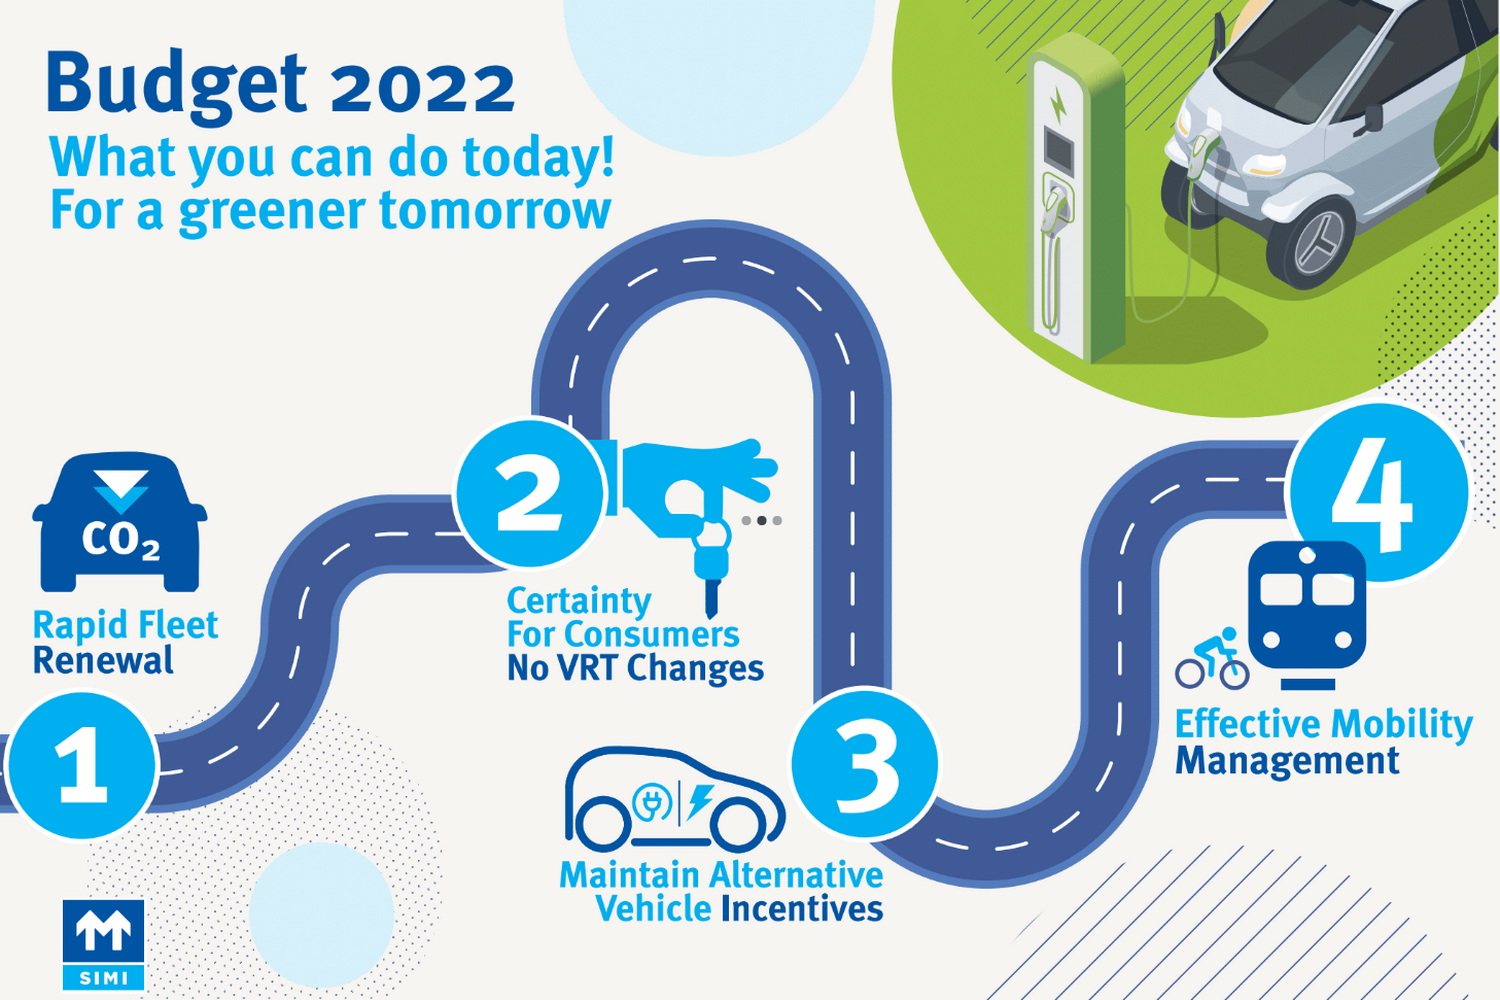 Car News | Irish motor industry claims tax plans will slow EV take-up | CompleteCar.ie